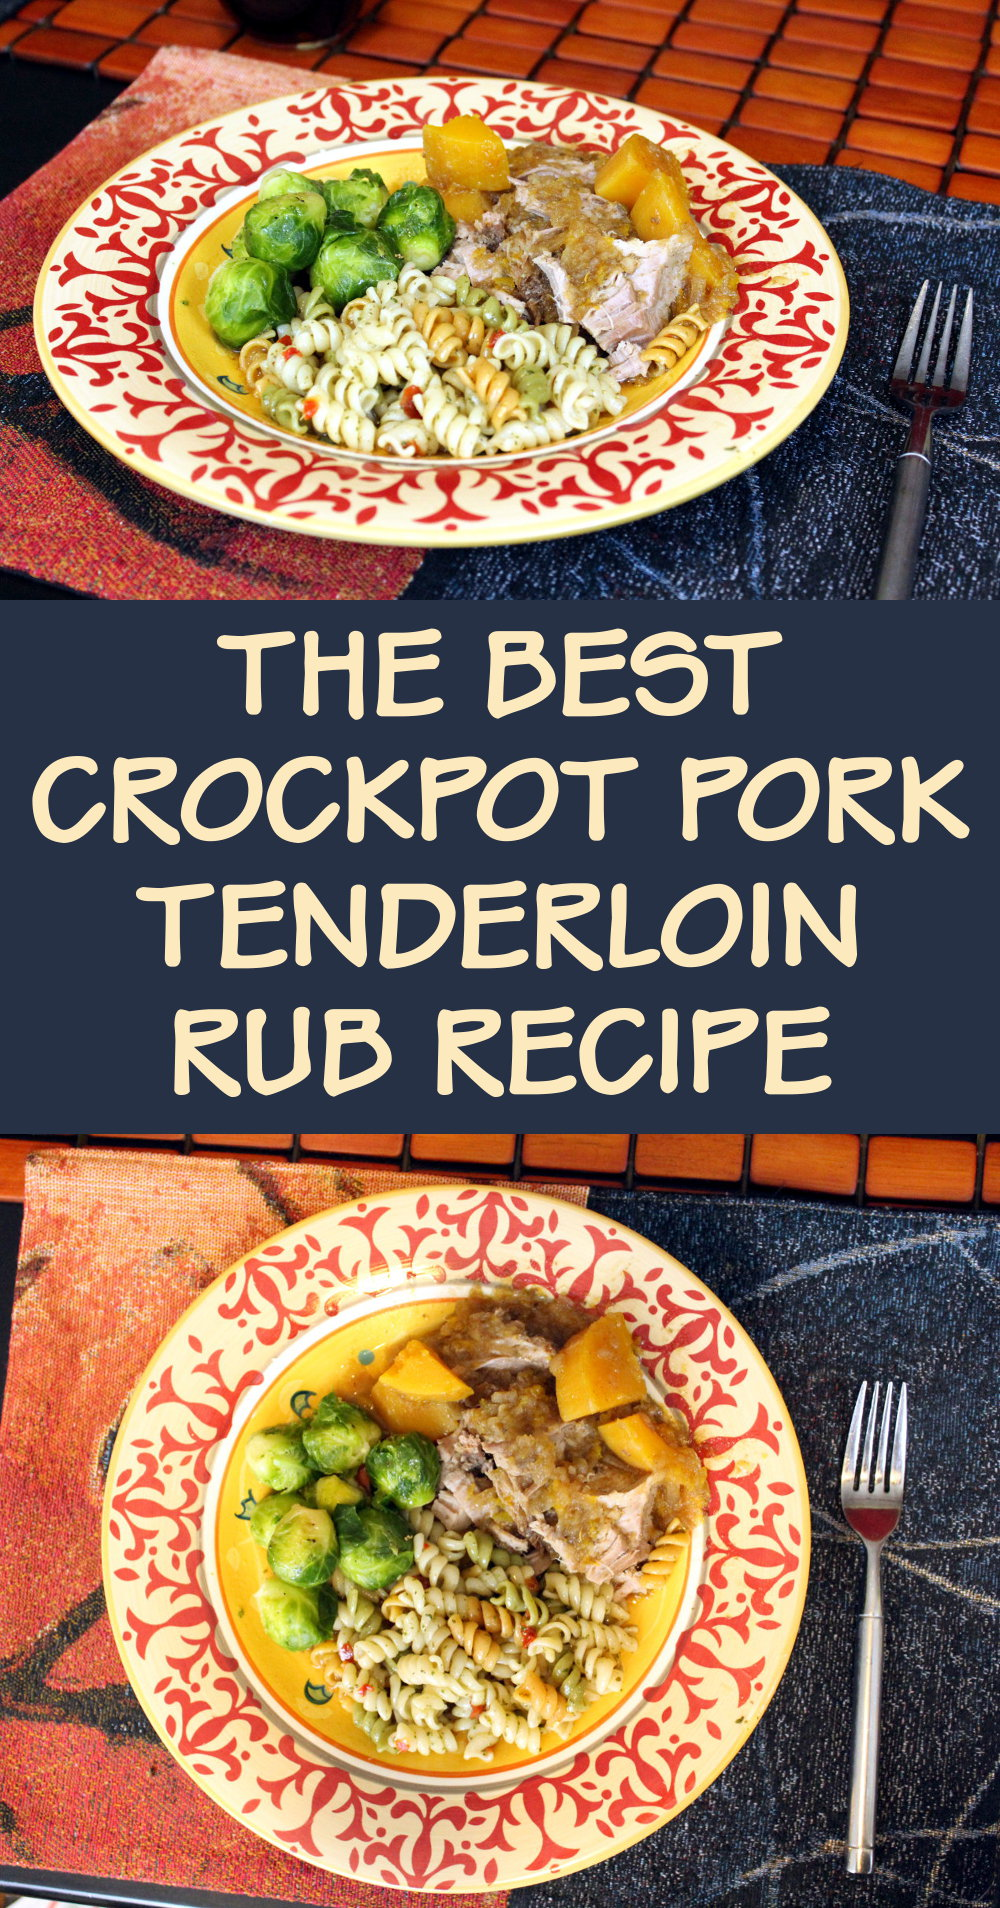 Best Pork Tenderloin Rub Recipe for Your Crockpot Dinner! Do you need a quick and easy recipe idea to liven up your weekday dinners? Give this best pork tenderloin rub recipe a try on your next crockpot tenderloin for some fantastic flavor infusion! #recipes #pork #porktenderloin #porkrub #dinner #crockpot #dinnerideas #food #weekdaydinners